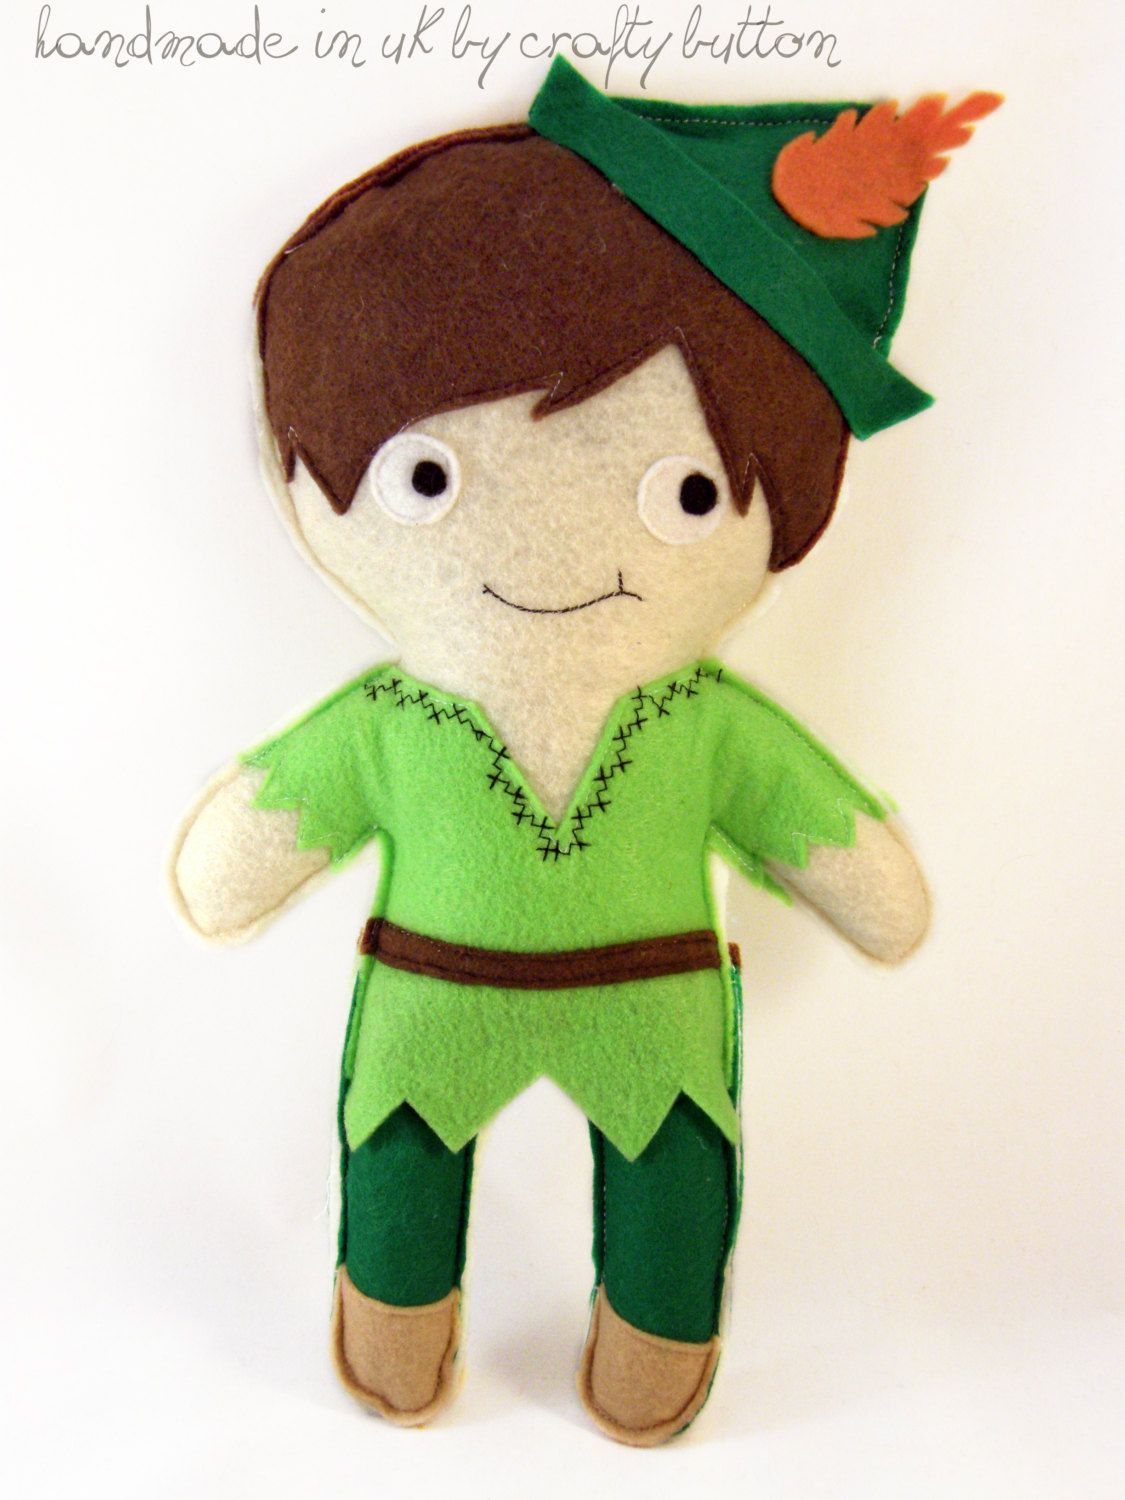 Peter Pan plush toy felt toy Disney by TheCraftyButtonUK on Etsy ...